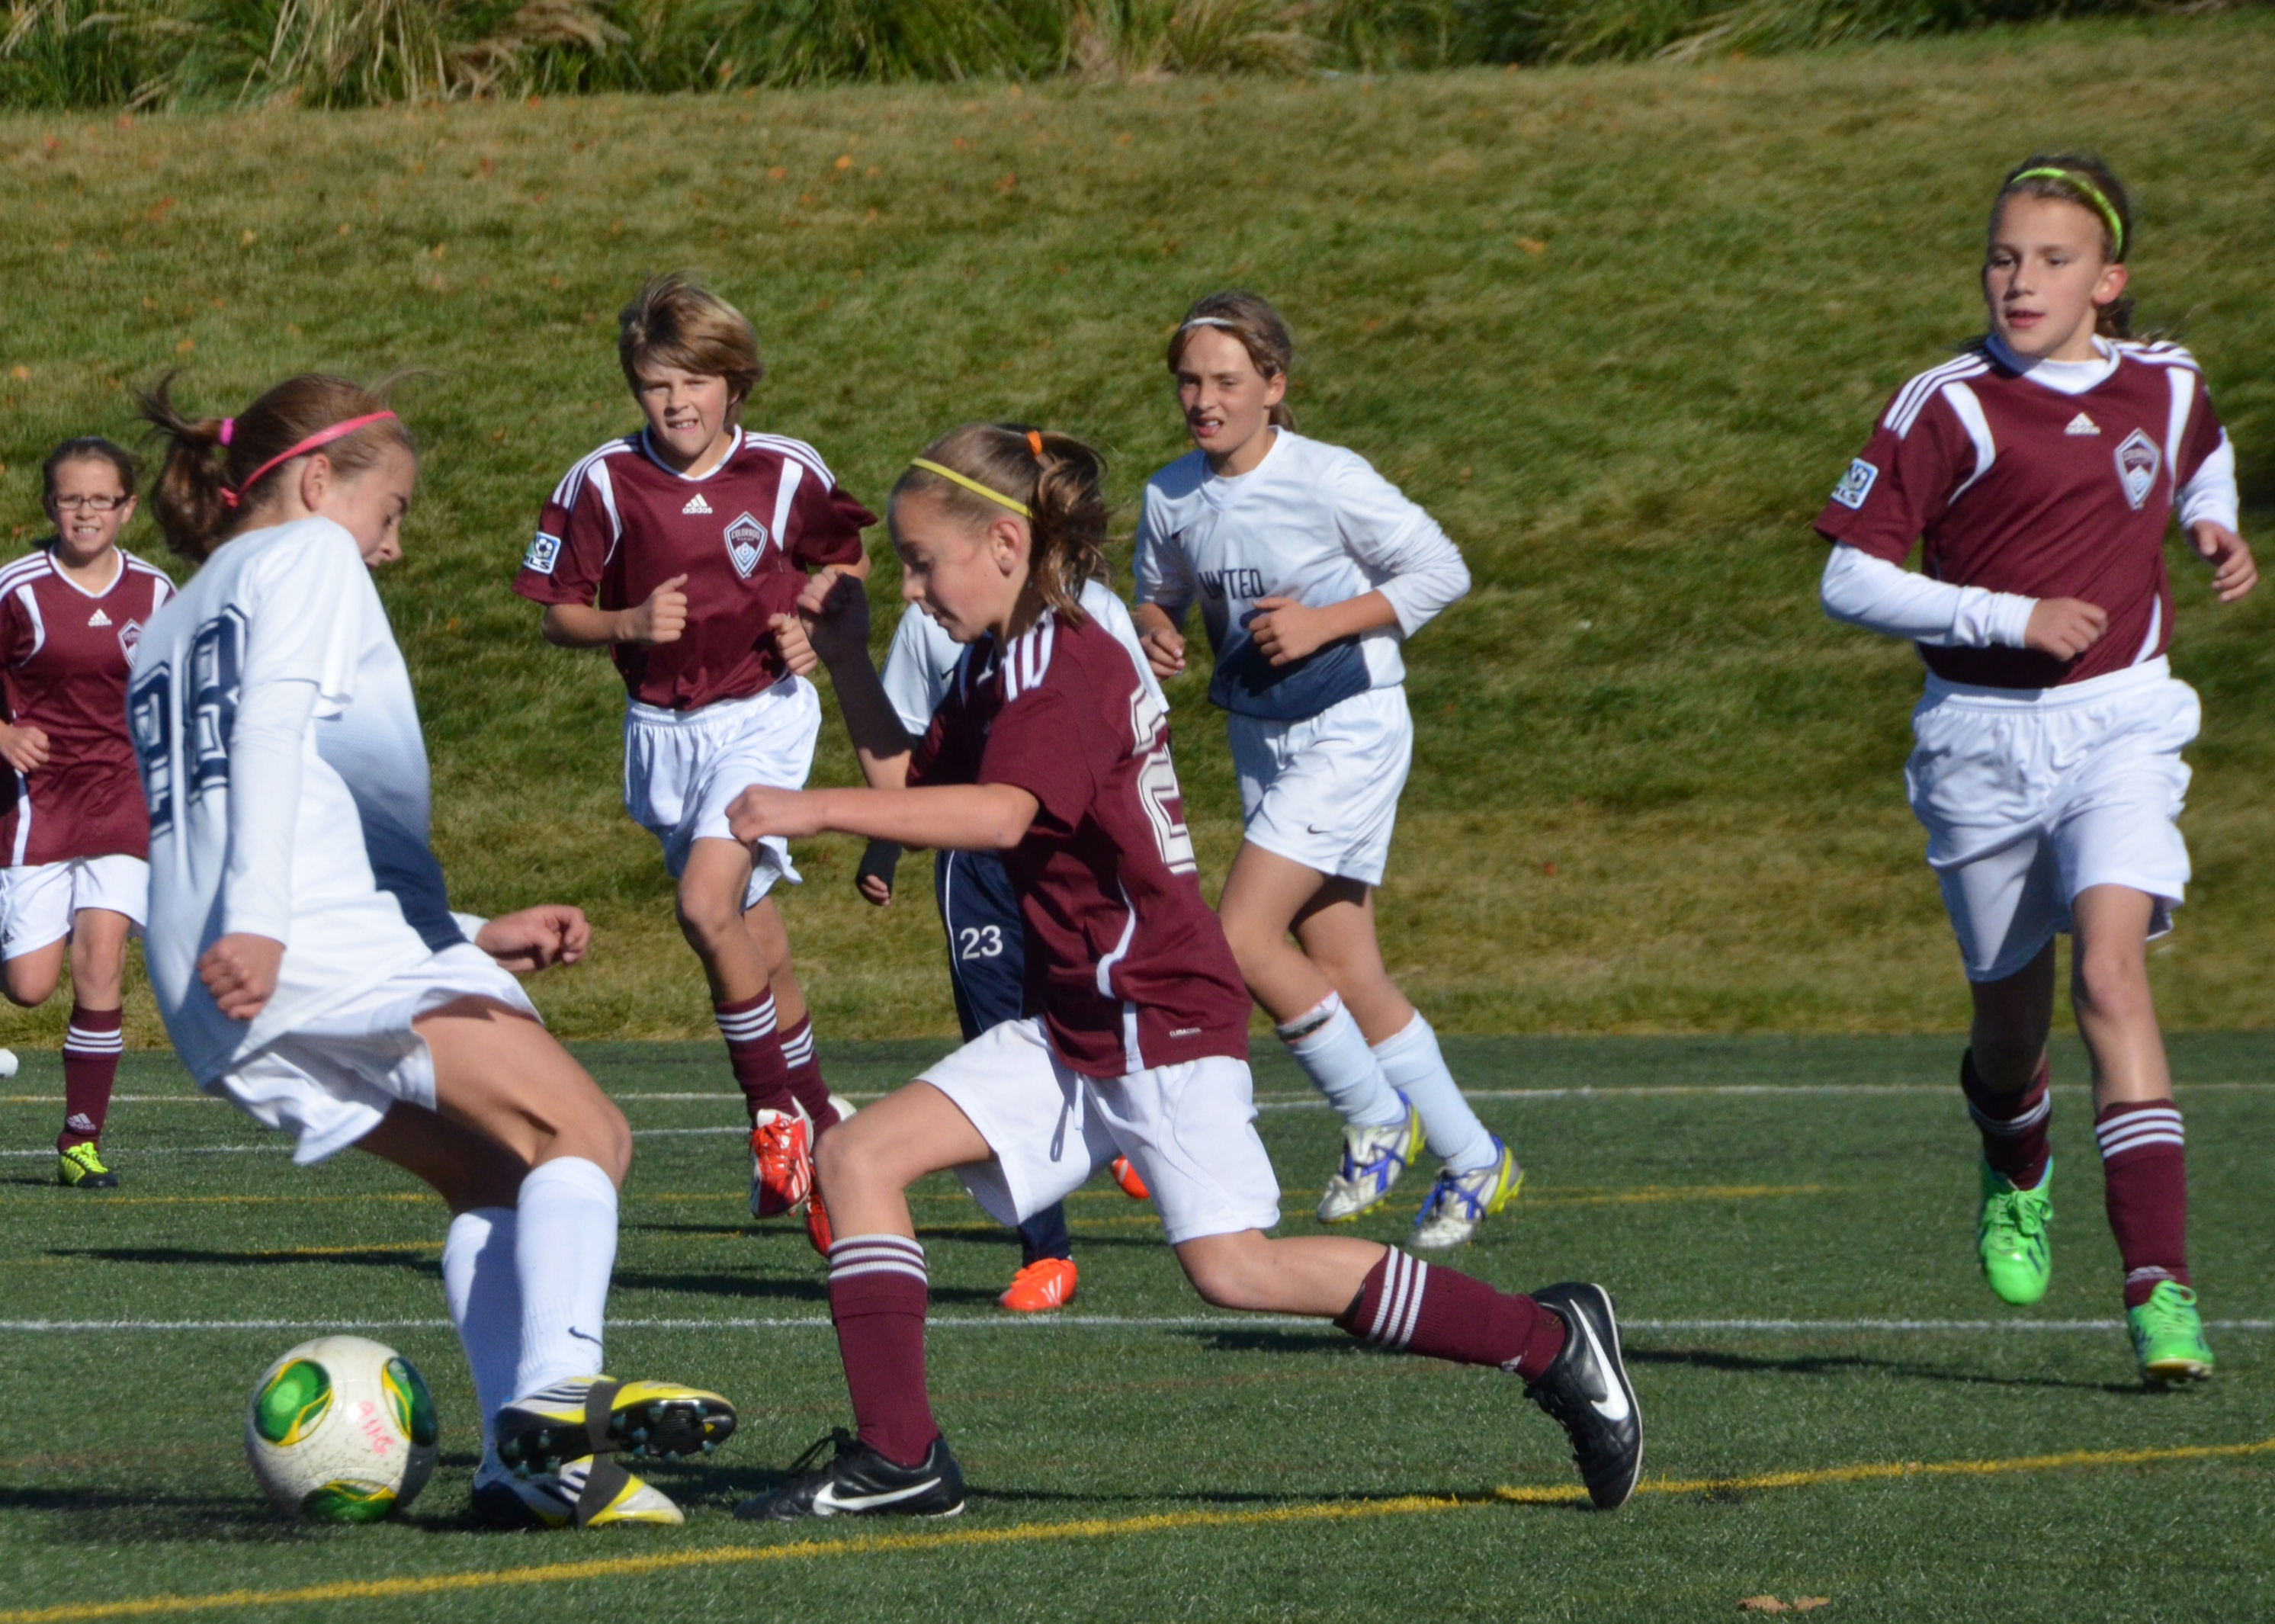 Photo: Colorado Rapids youth soccer player in action